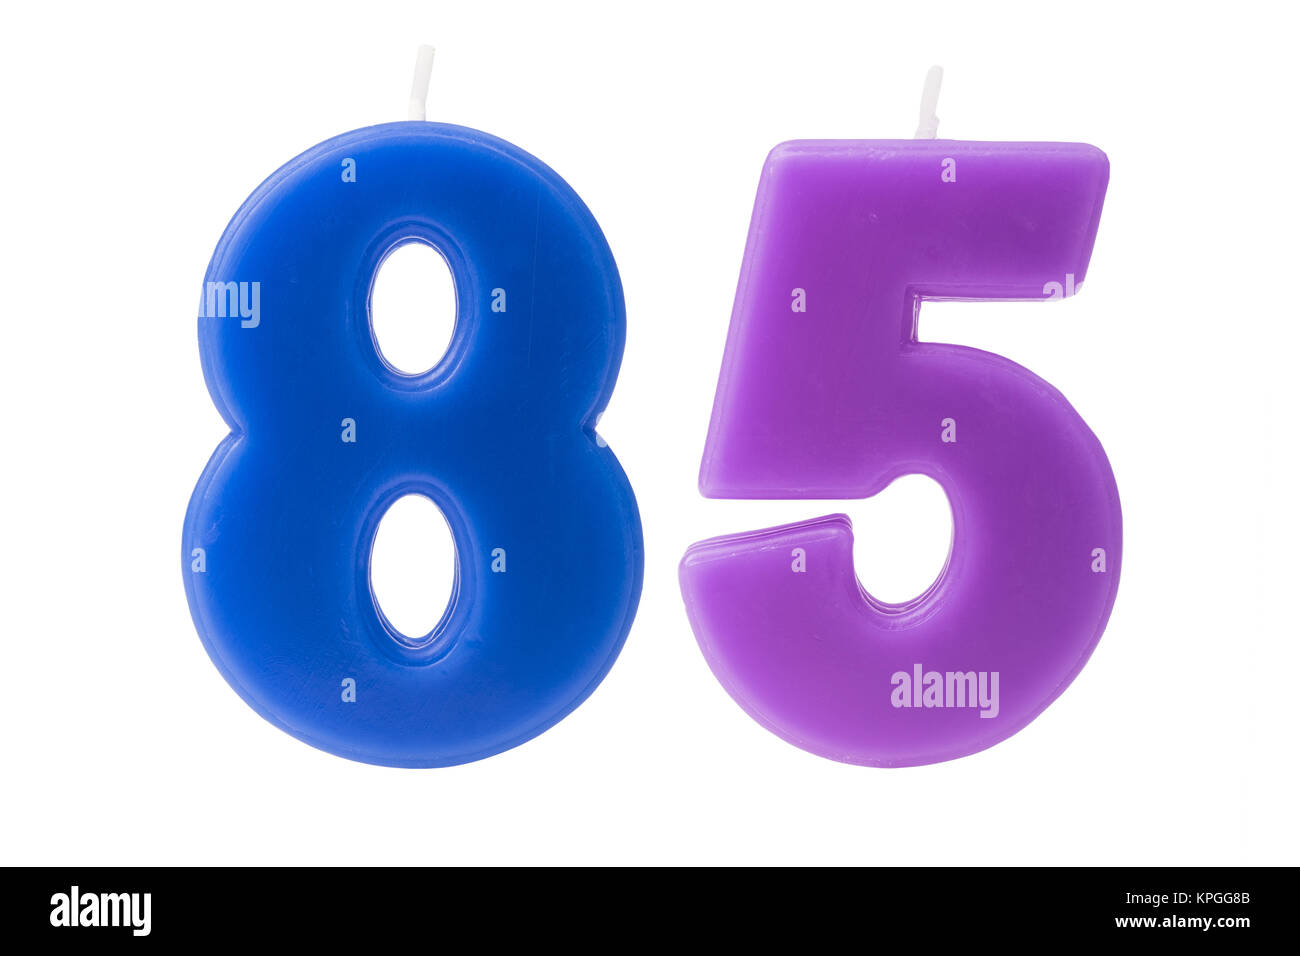 85th birthday candles isolated - Stock Image